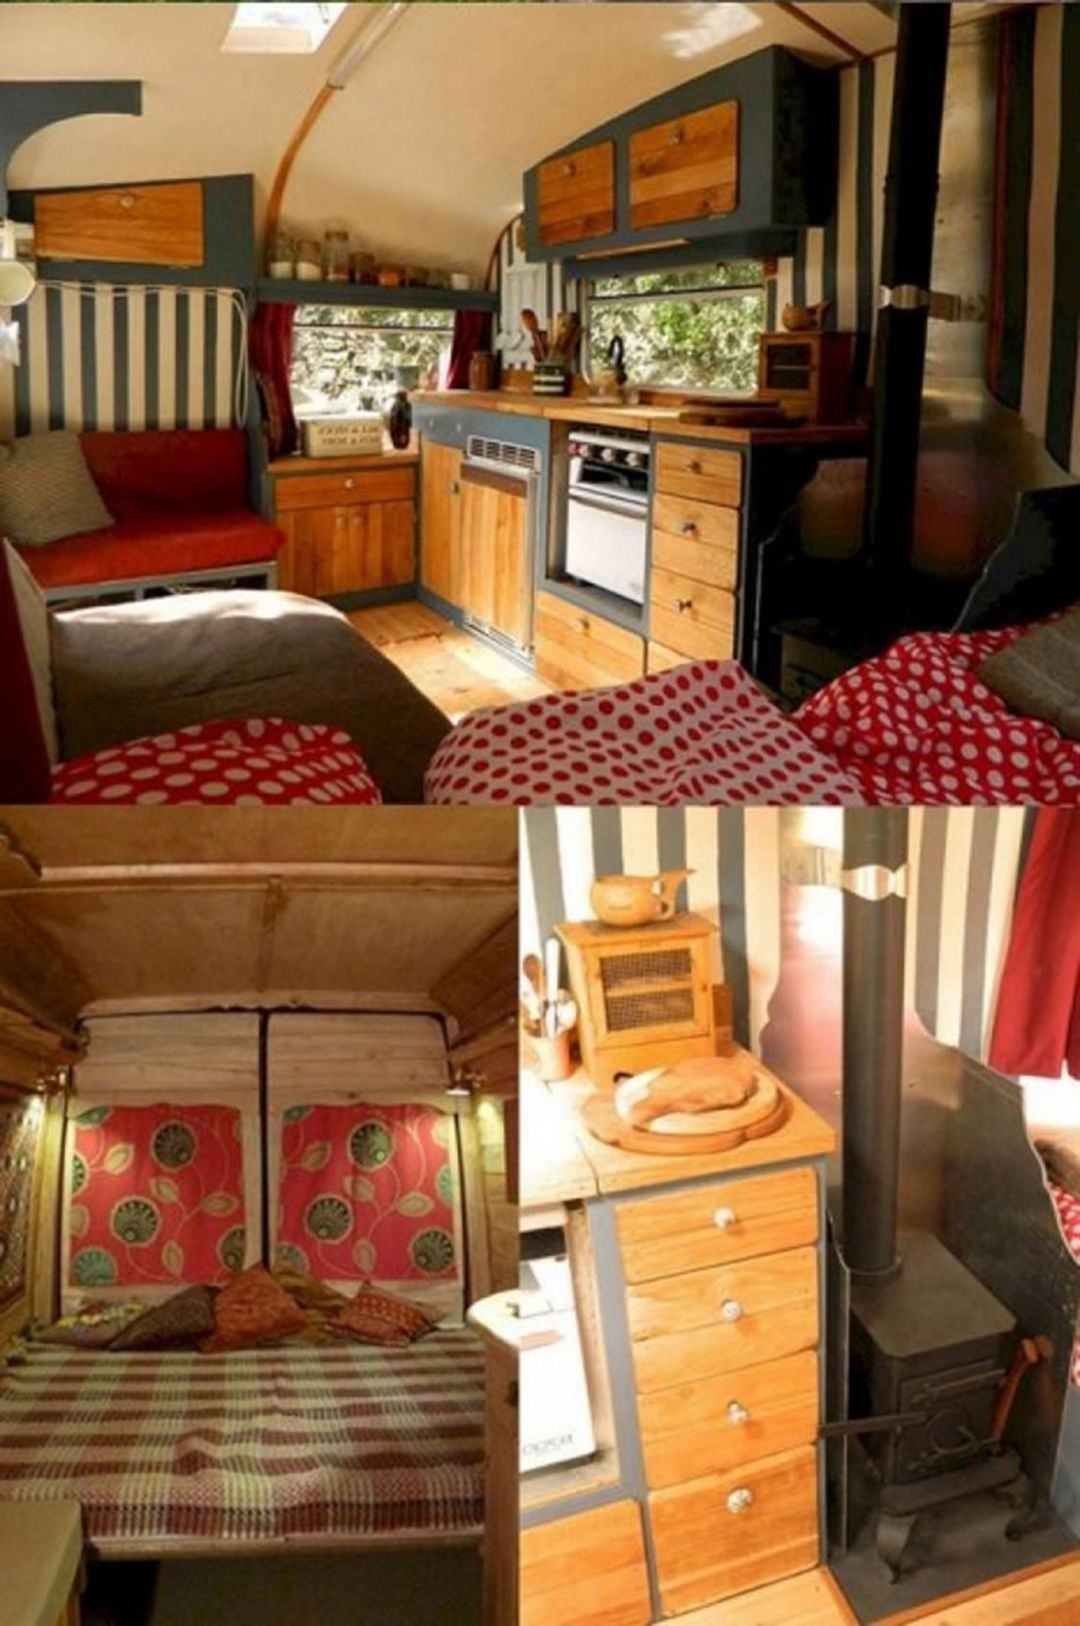 25 Best And Low-Cost Small RV Remodel Ideas With Before